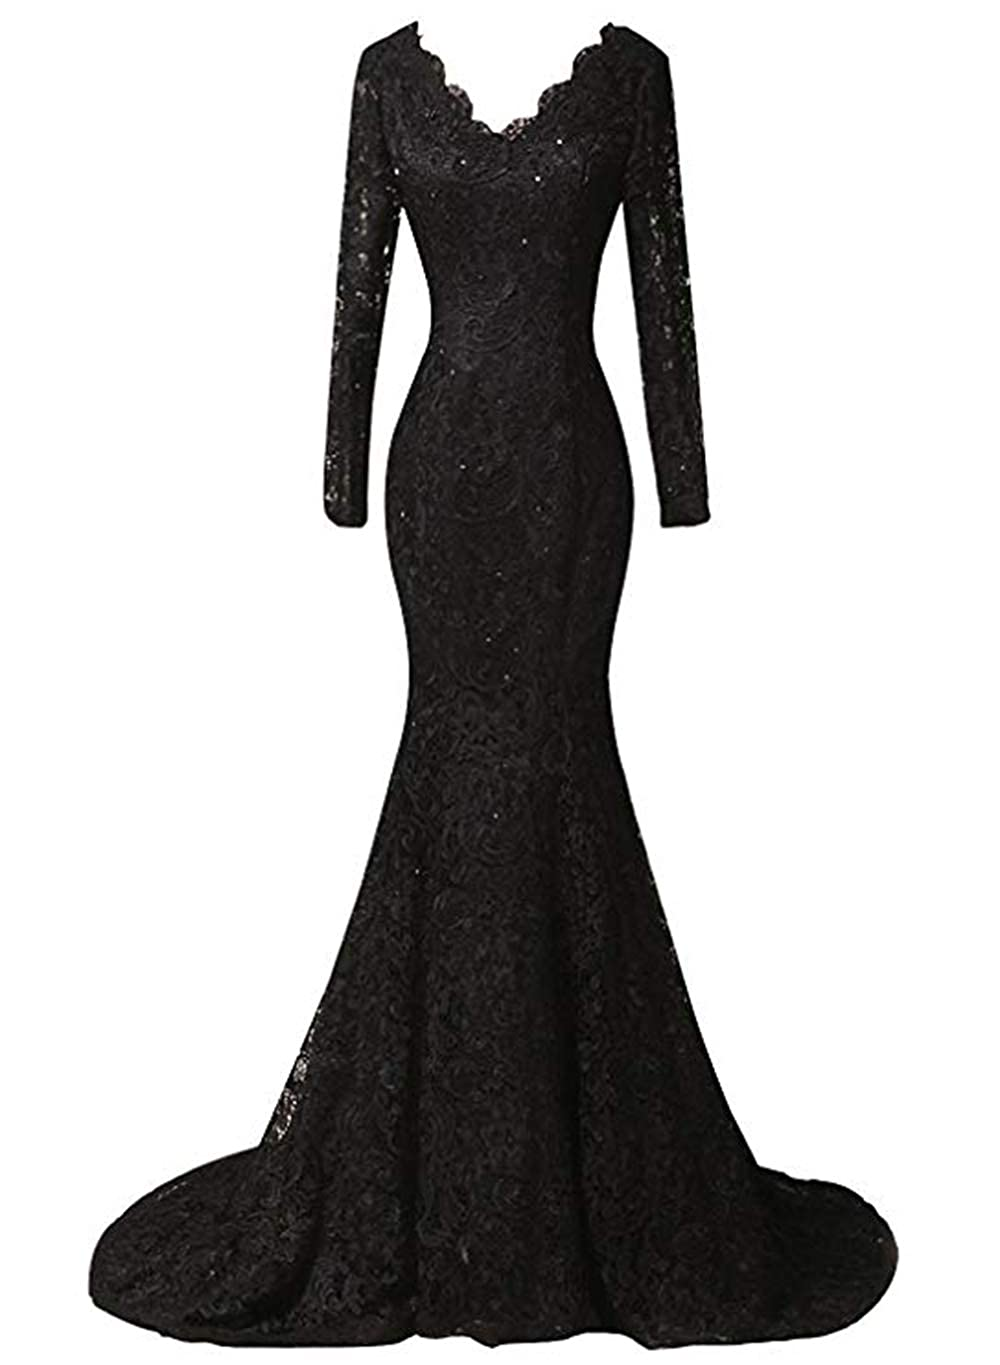 Black Ri Yun Women's Elegant Long Sleeves Lace Prom Dresses Mermaid VNeck Beaded Formal Evening Party Gowns